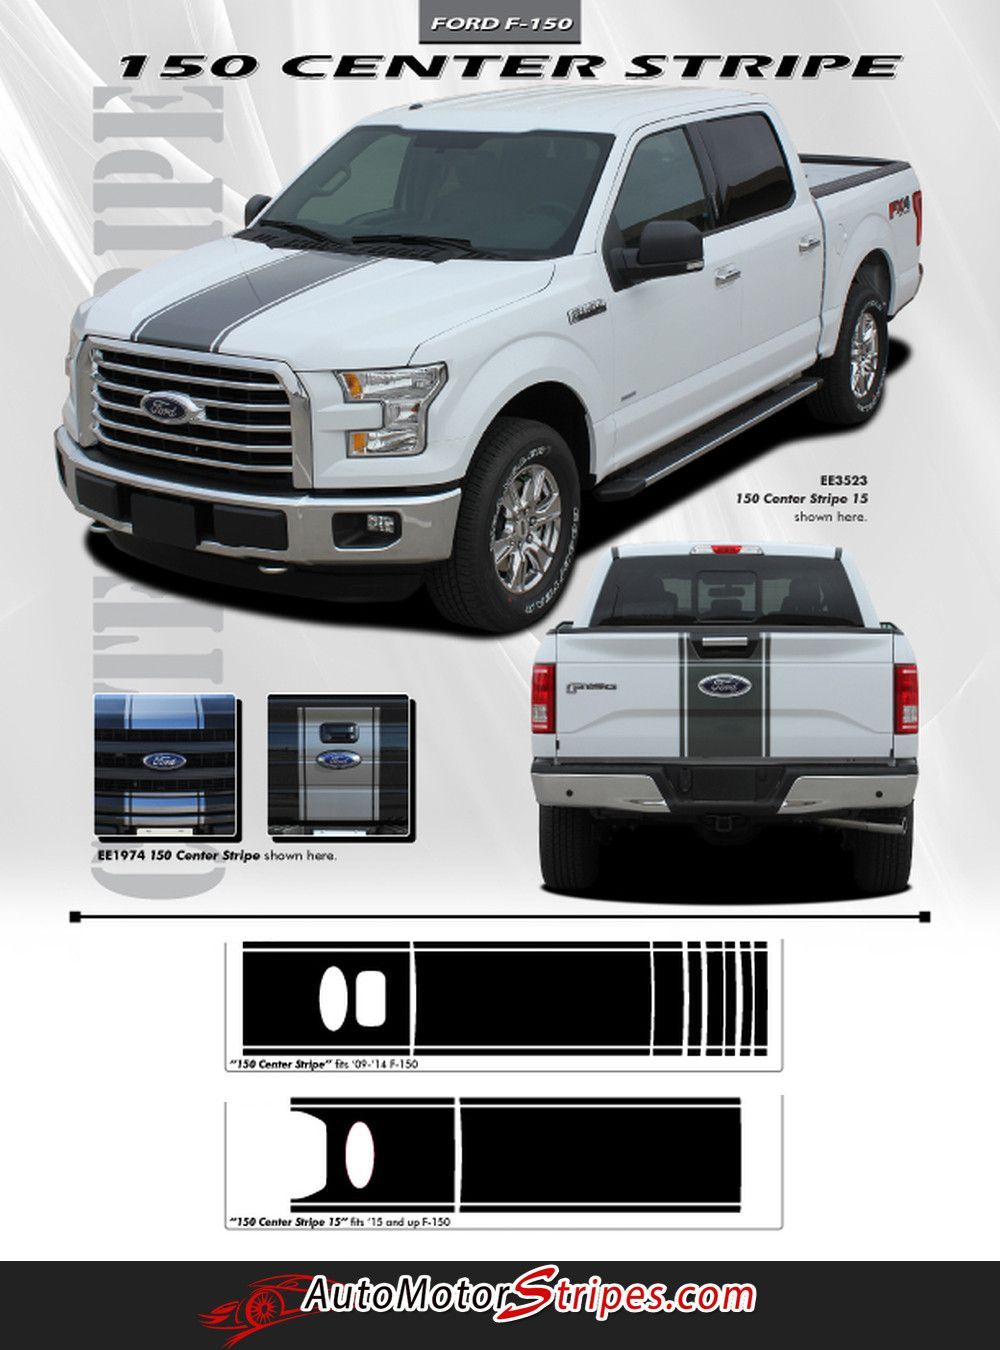 Ford F Center Stripe Factory Style Vinyl Decal M - Truck bed decals customford f vinyl graphics for bed fender